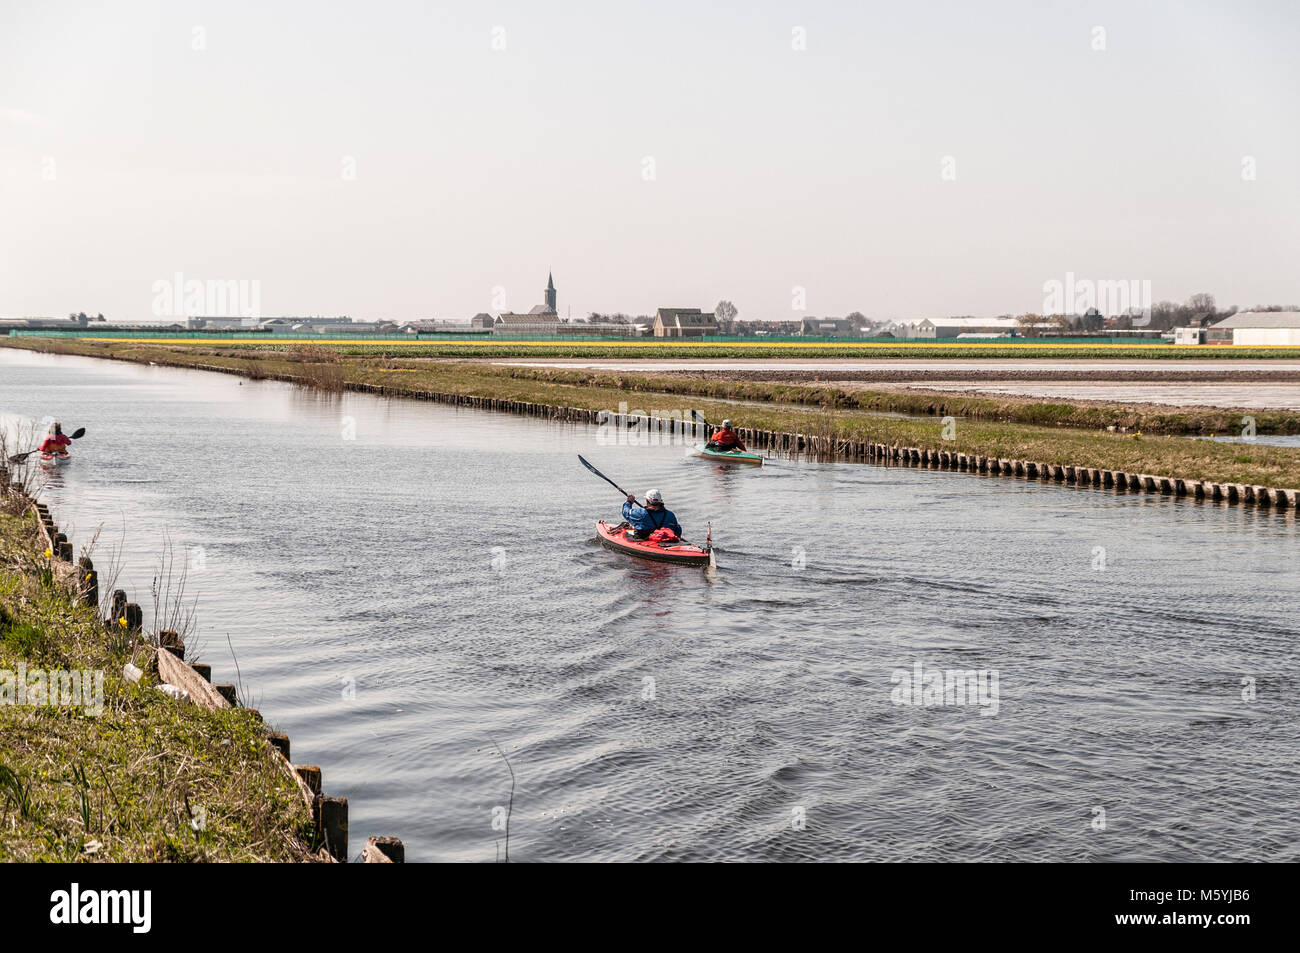 canoeing on the Dutch rivers surrounded by meadows - Stock Image